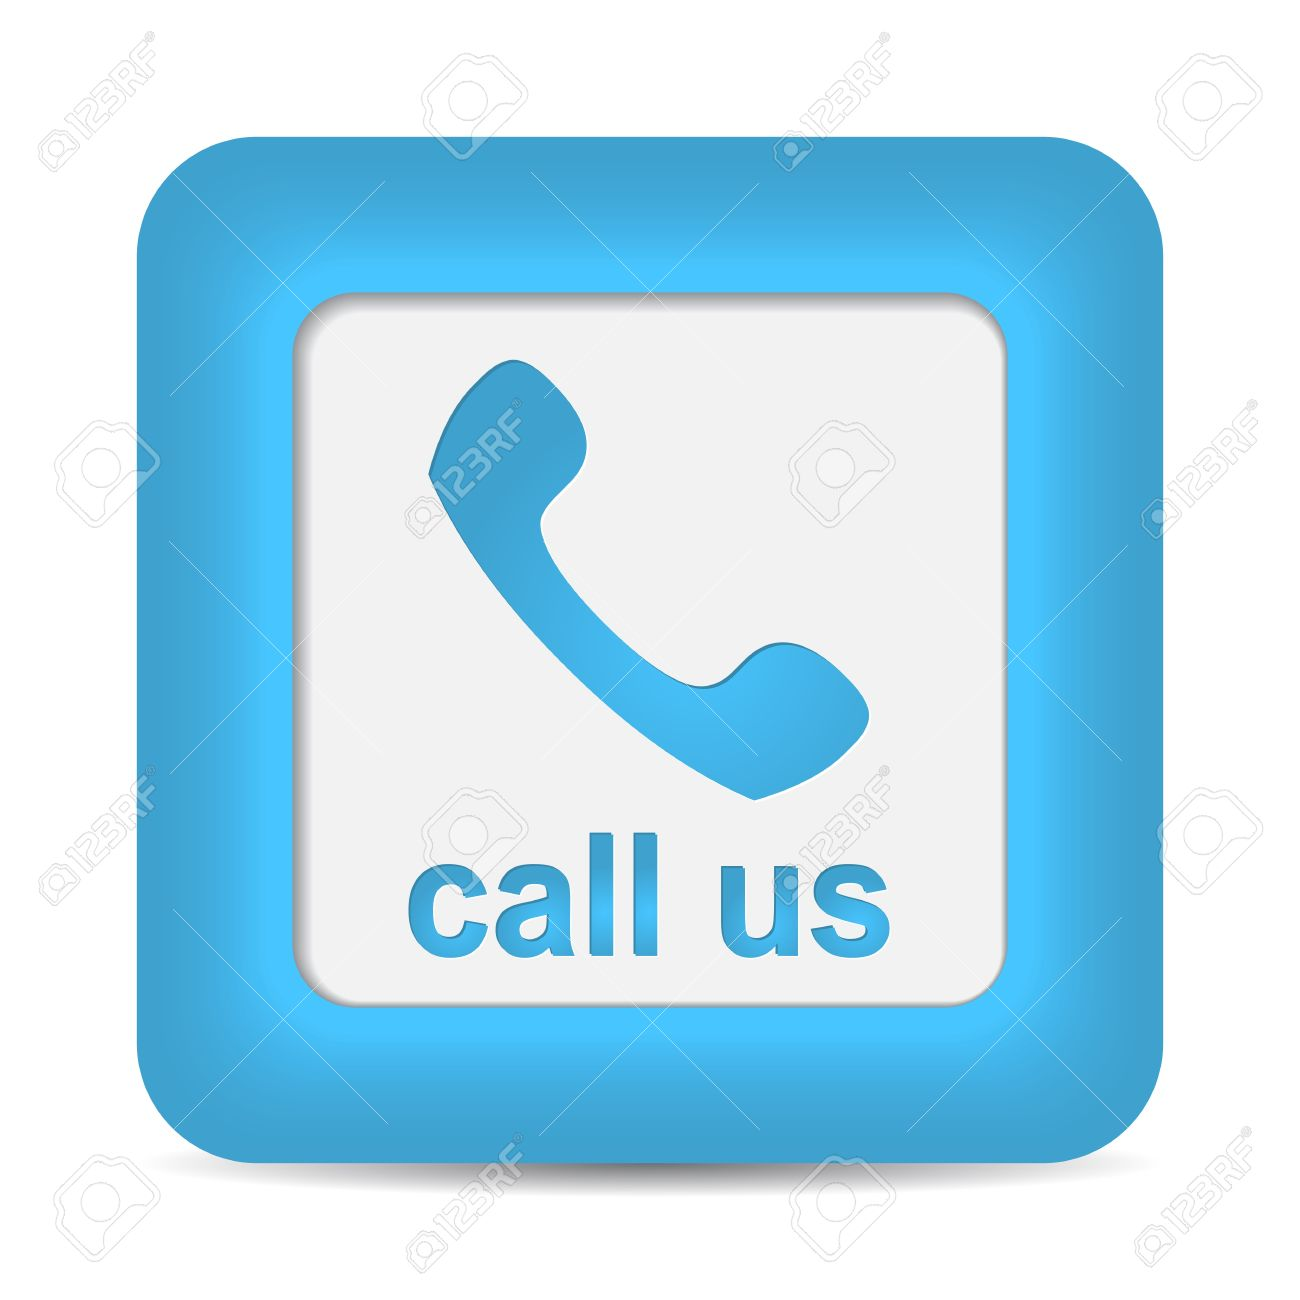 Call Us  Phone icon on blue button